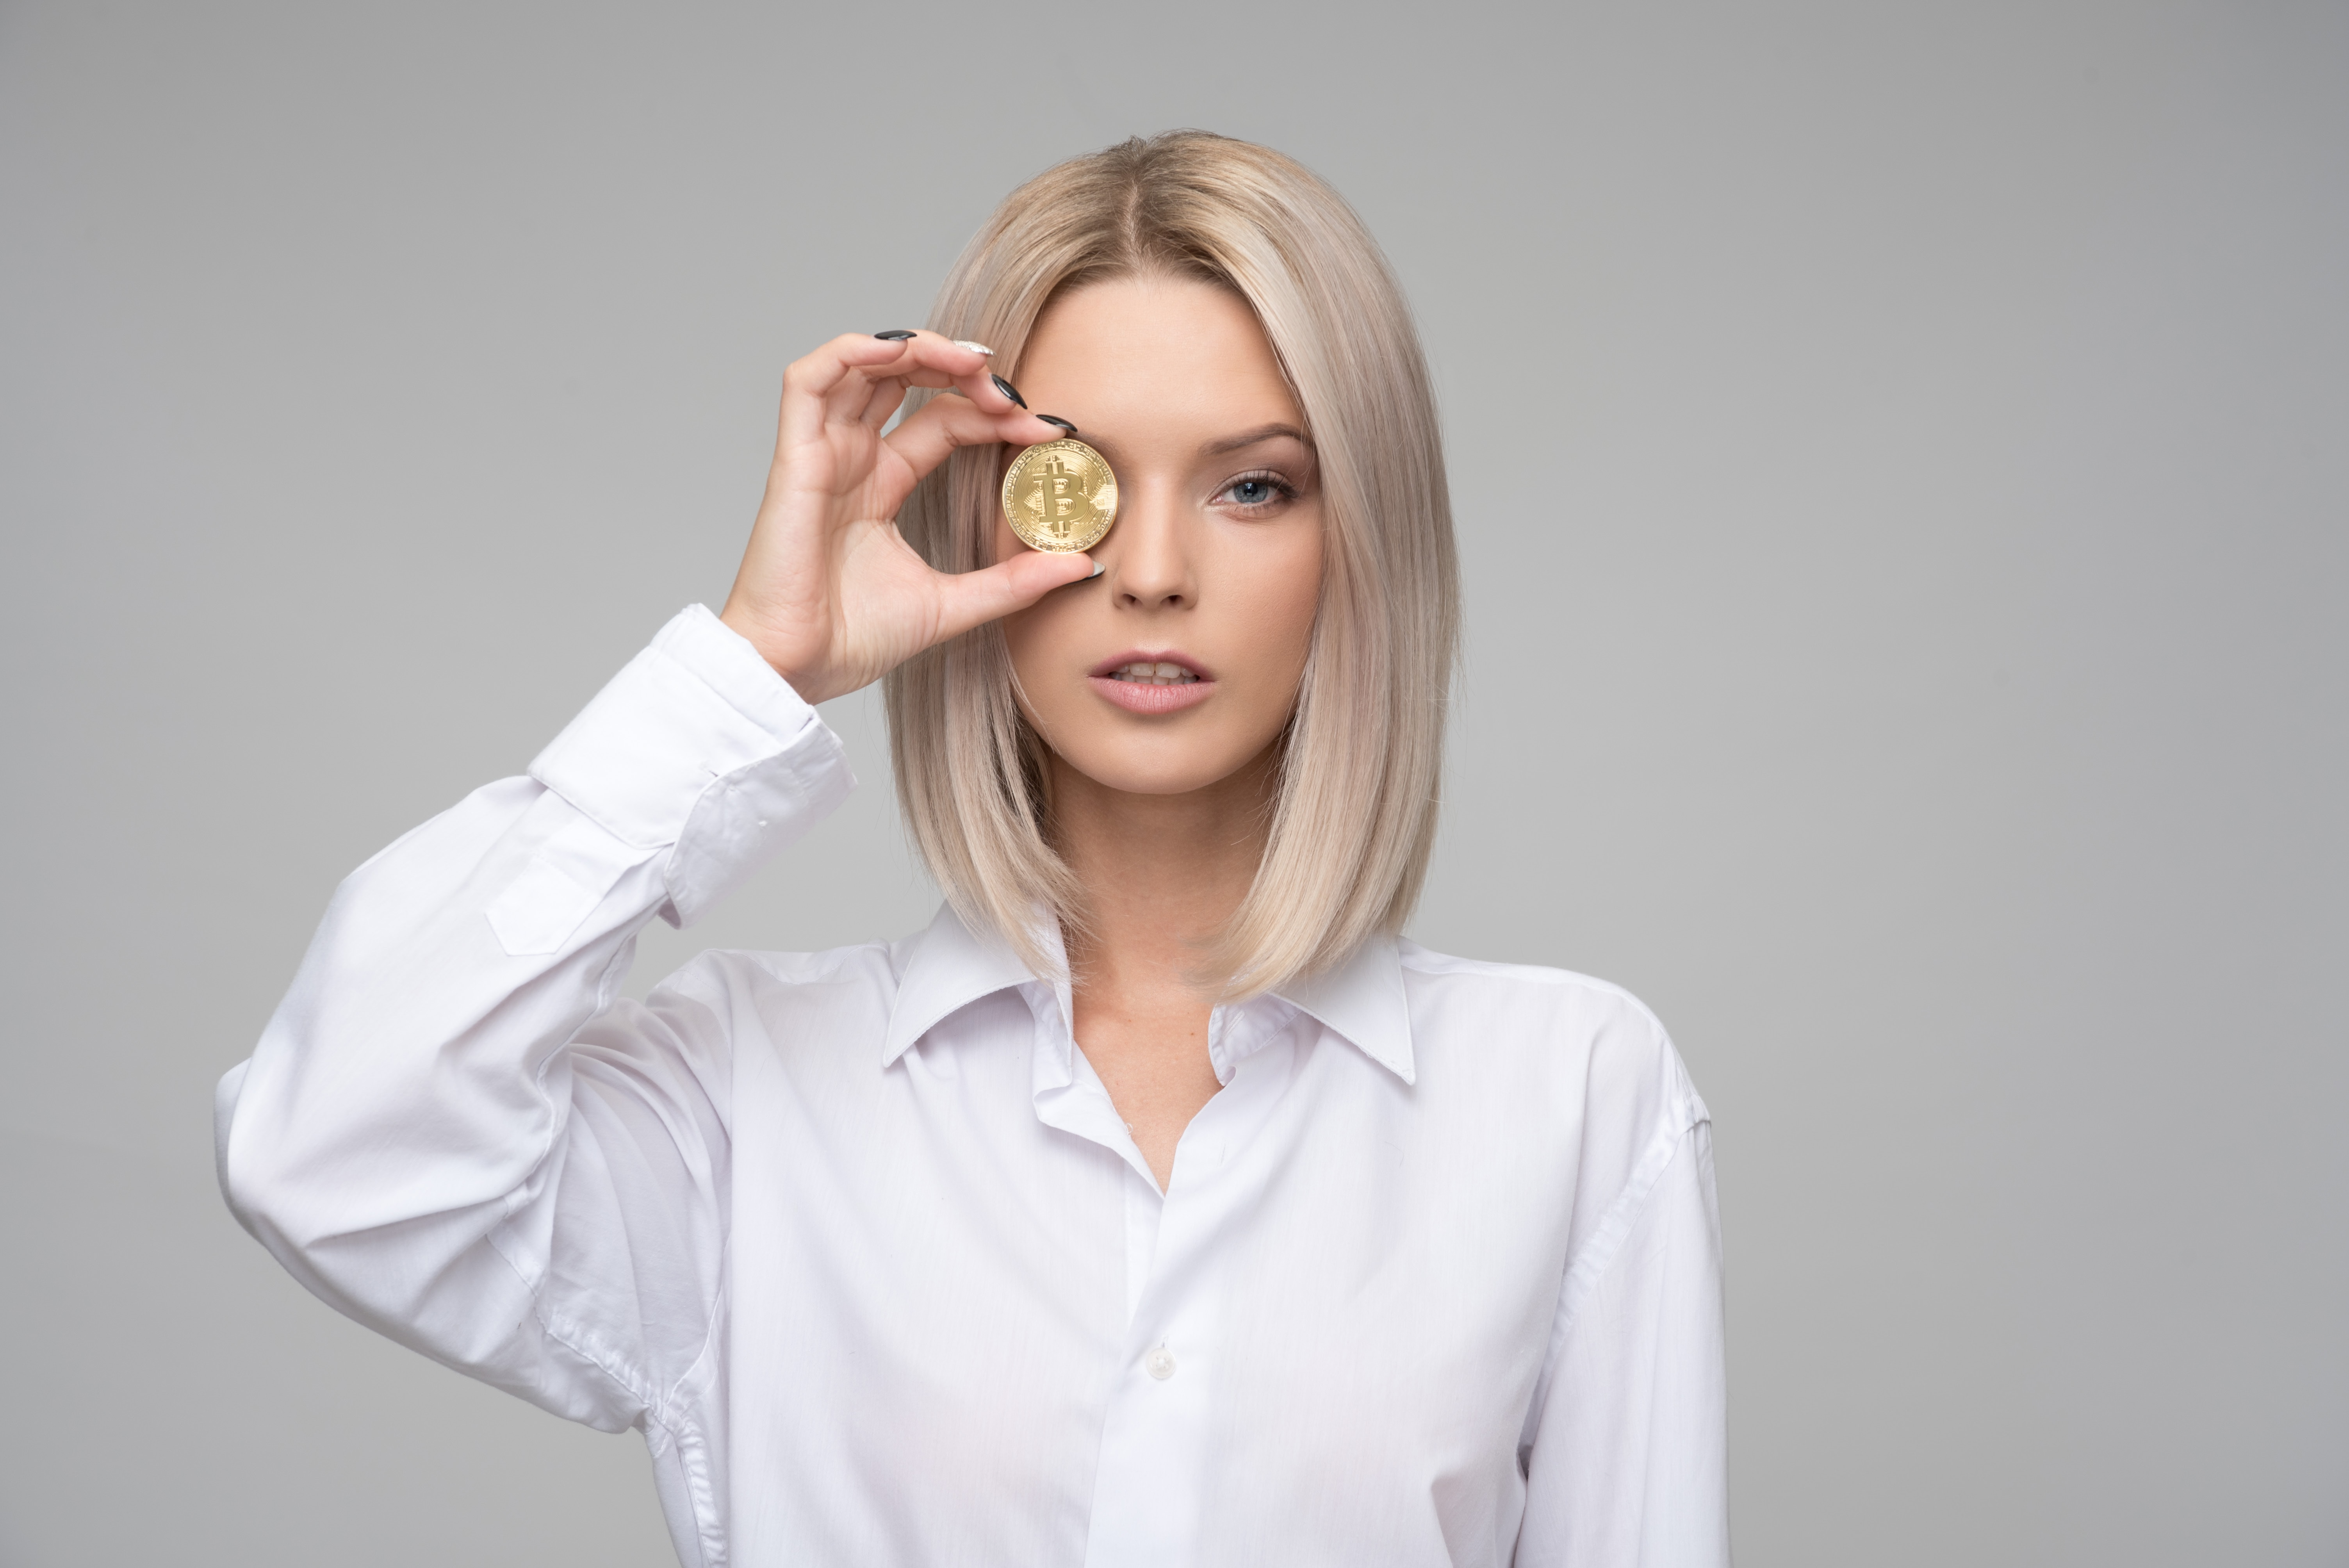 5 Bitcoin Alternatives for Those Who Doesn't Have a Fortune Yet 2